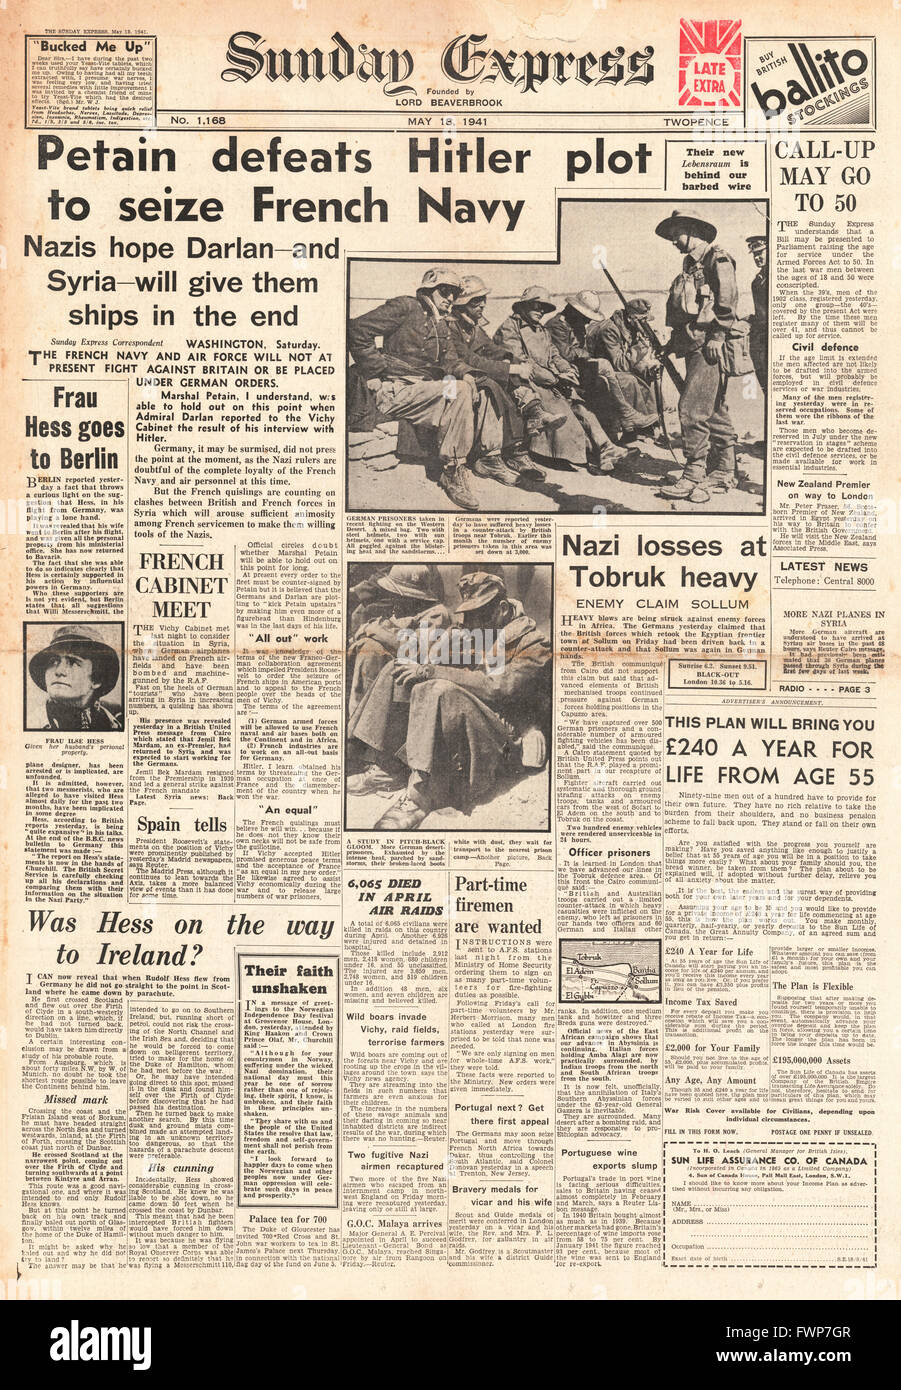 1941 front page Sunday Express Petain keeps control of French Navy - Stock Image